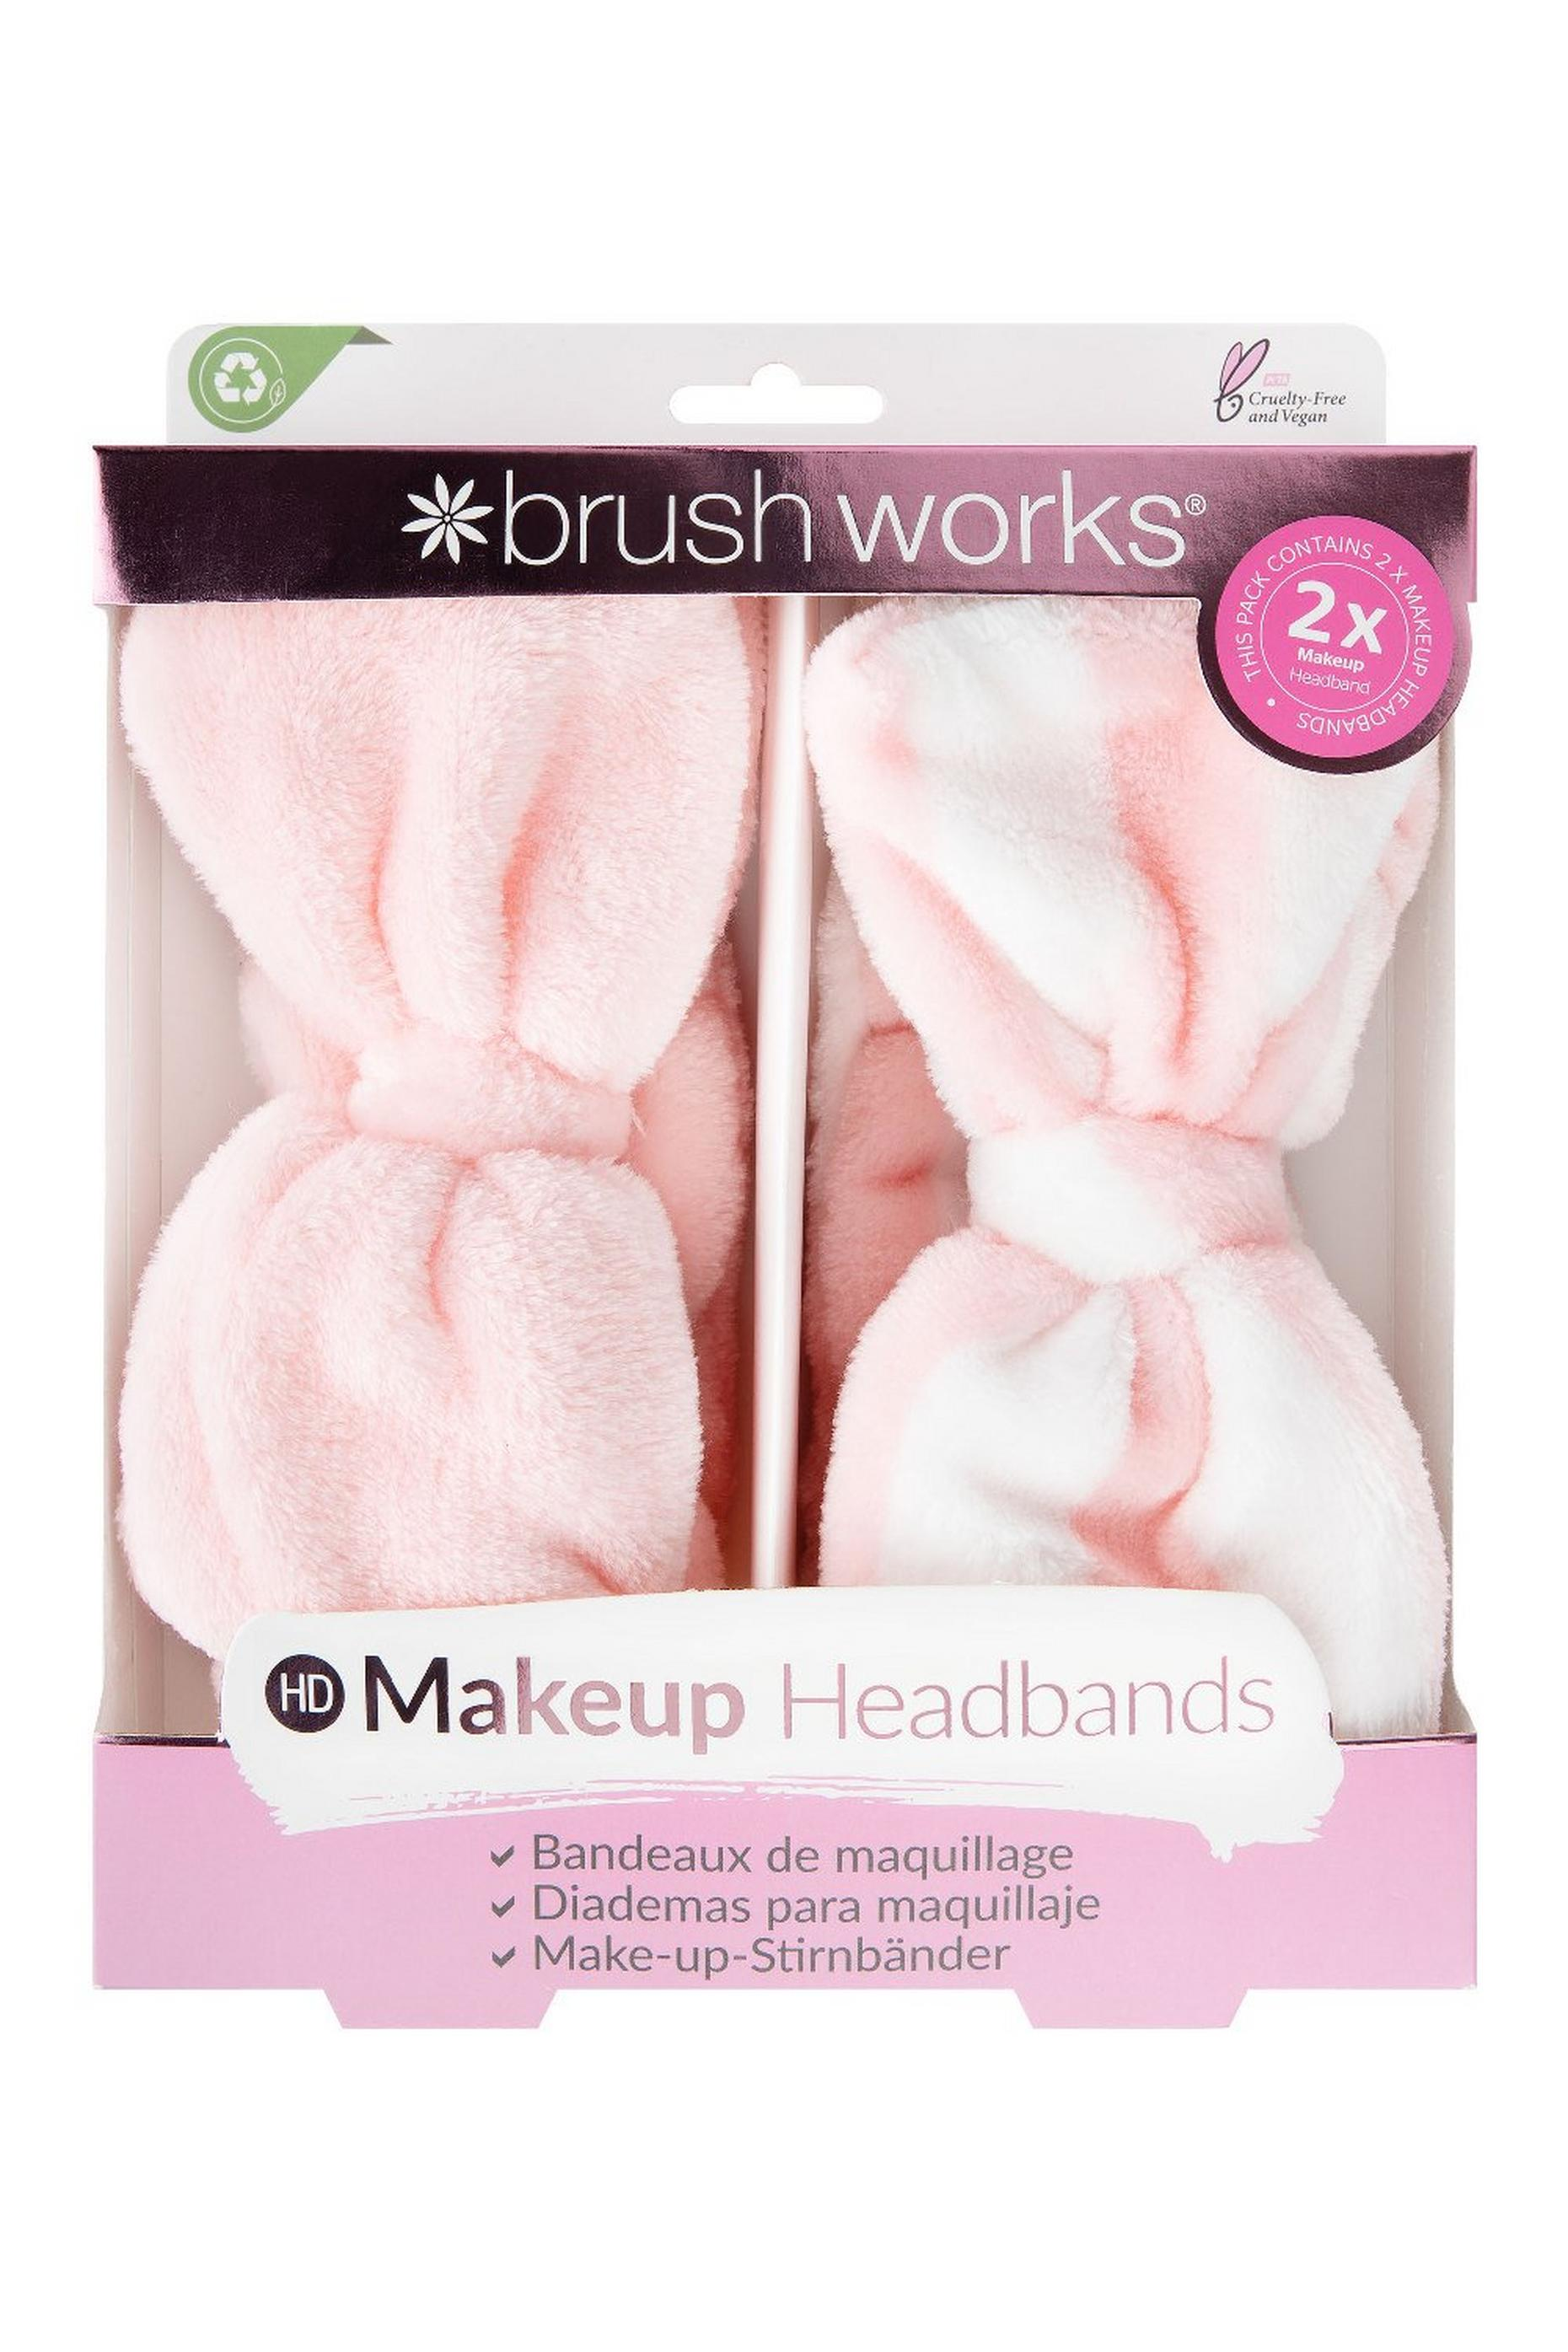 Brushworks Makeup Headbands - 2 Pack